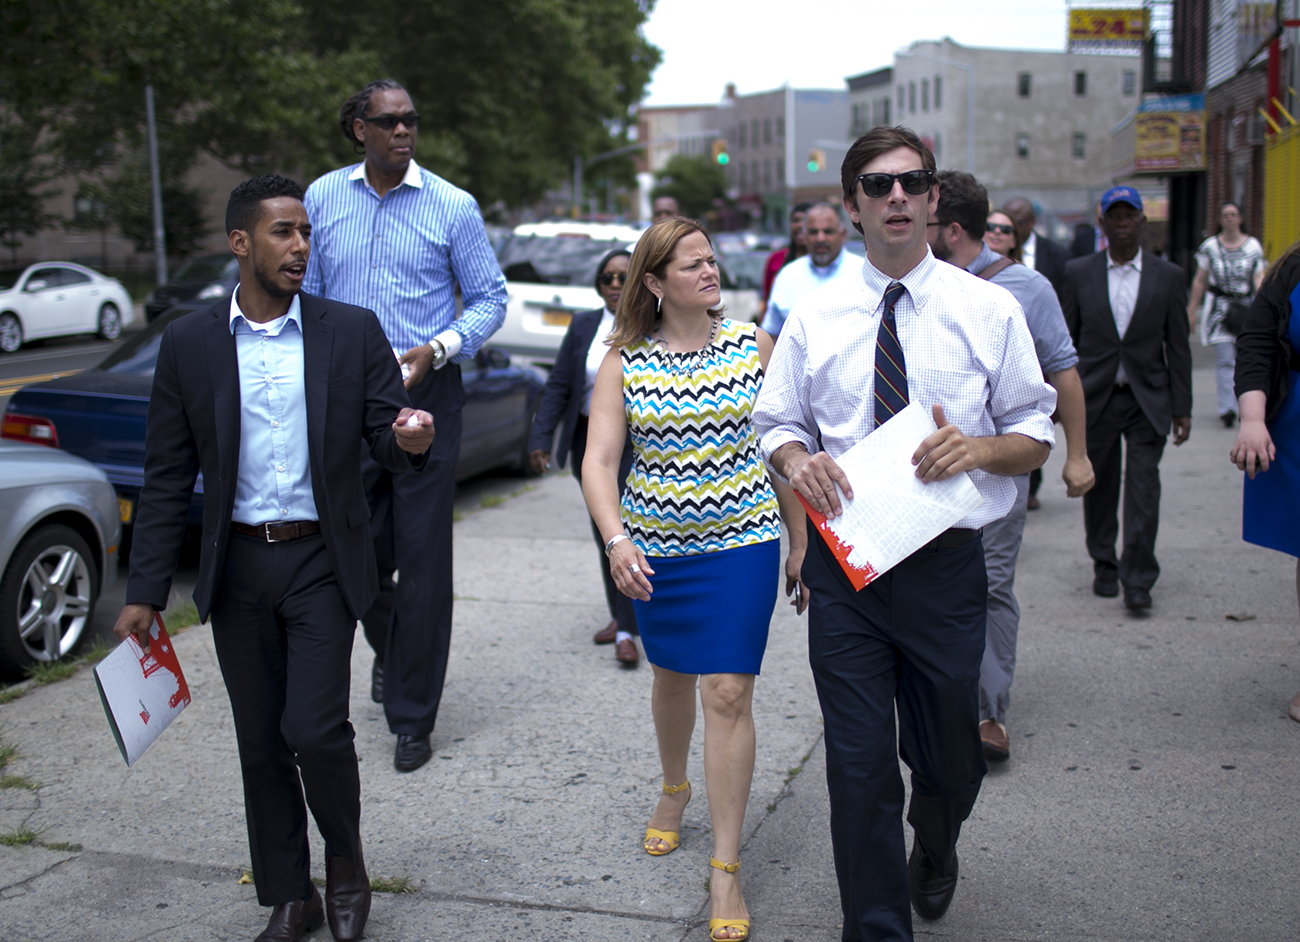 Council Speaker Melissa Mark-Viverito, center, tours an Industrial Business Zone with, from left, Council members Antonio Reynoso, Robert Cornegy, and Stephen Levin.